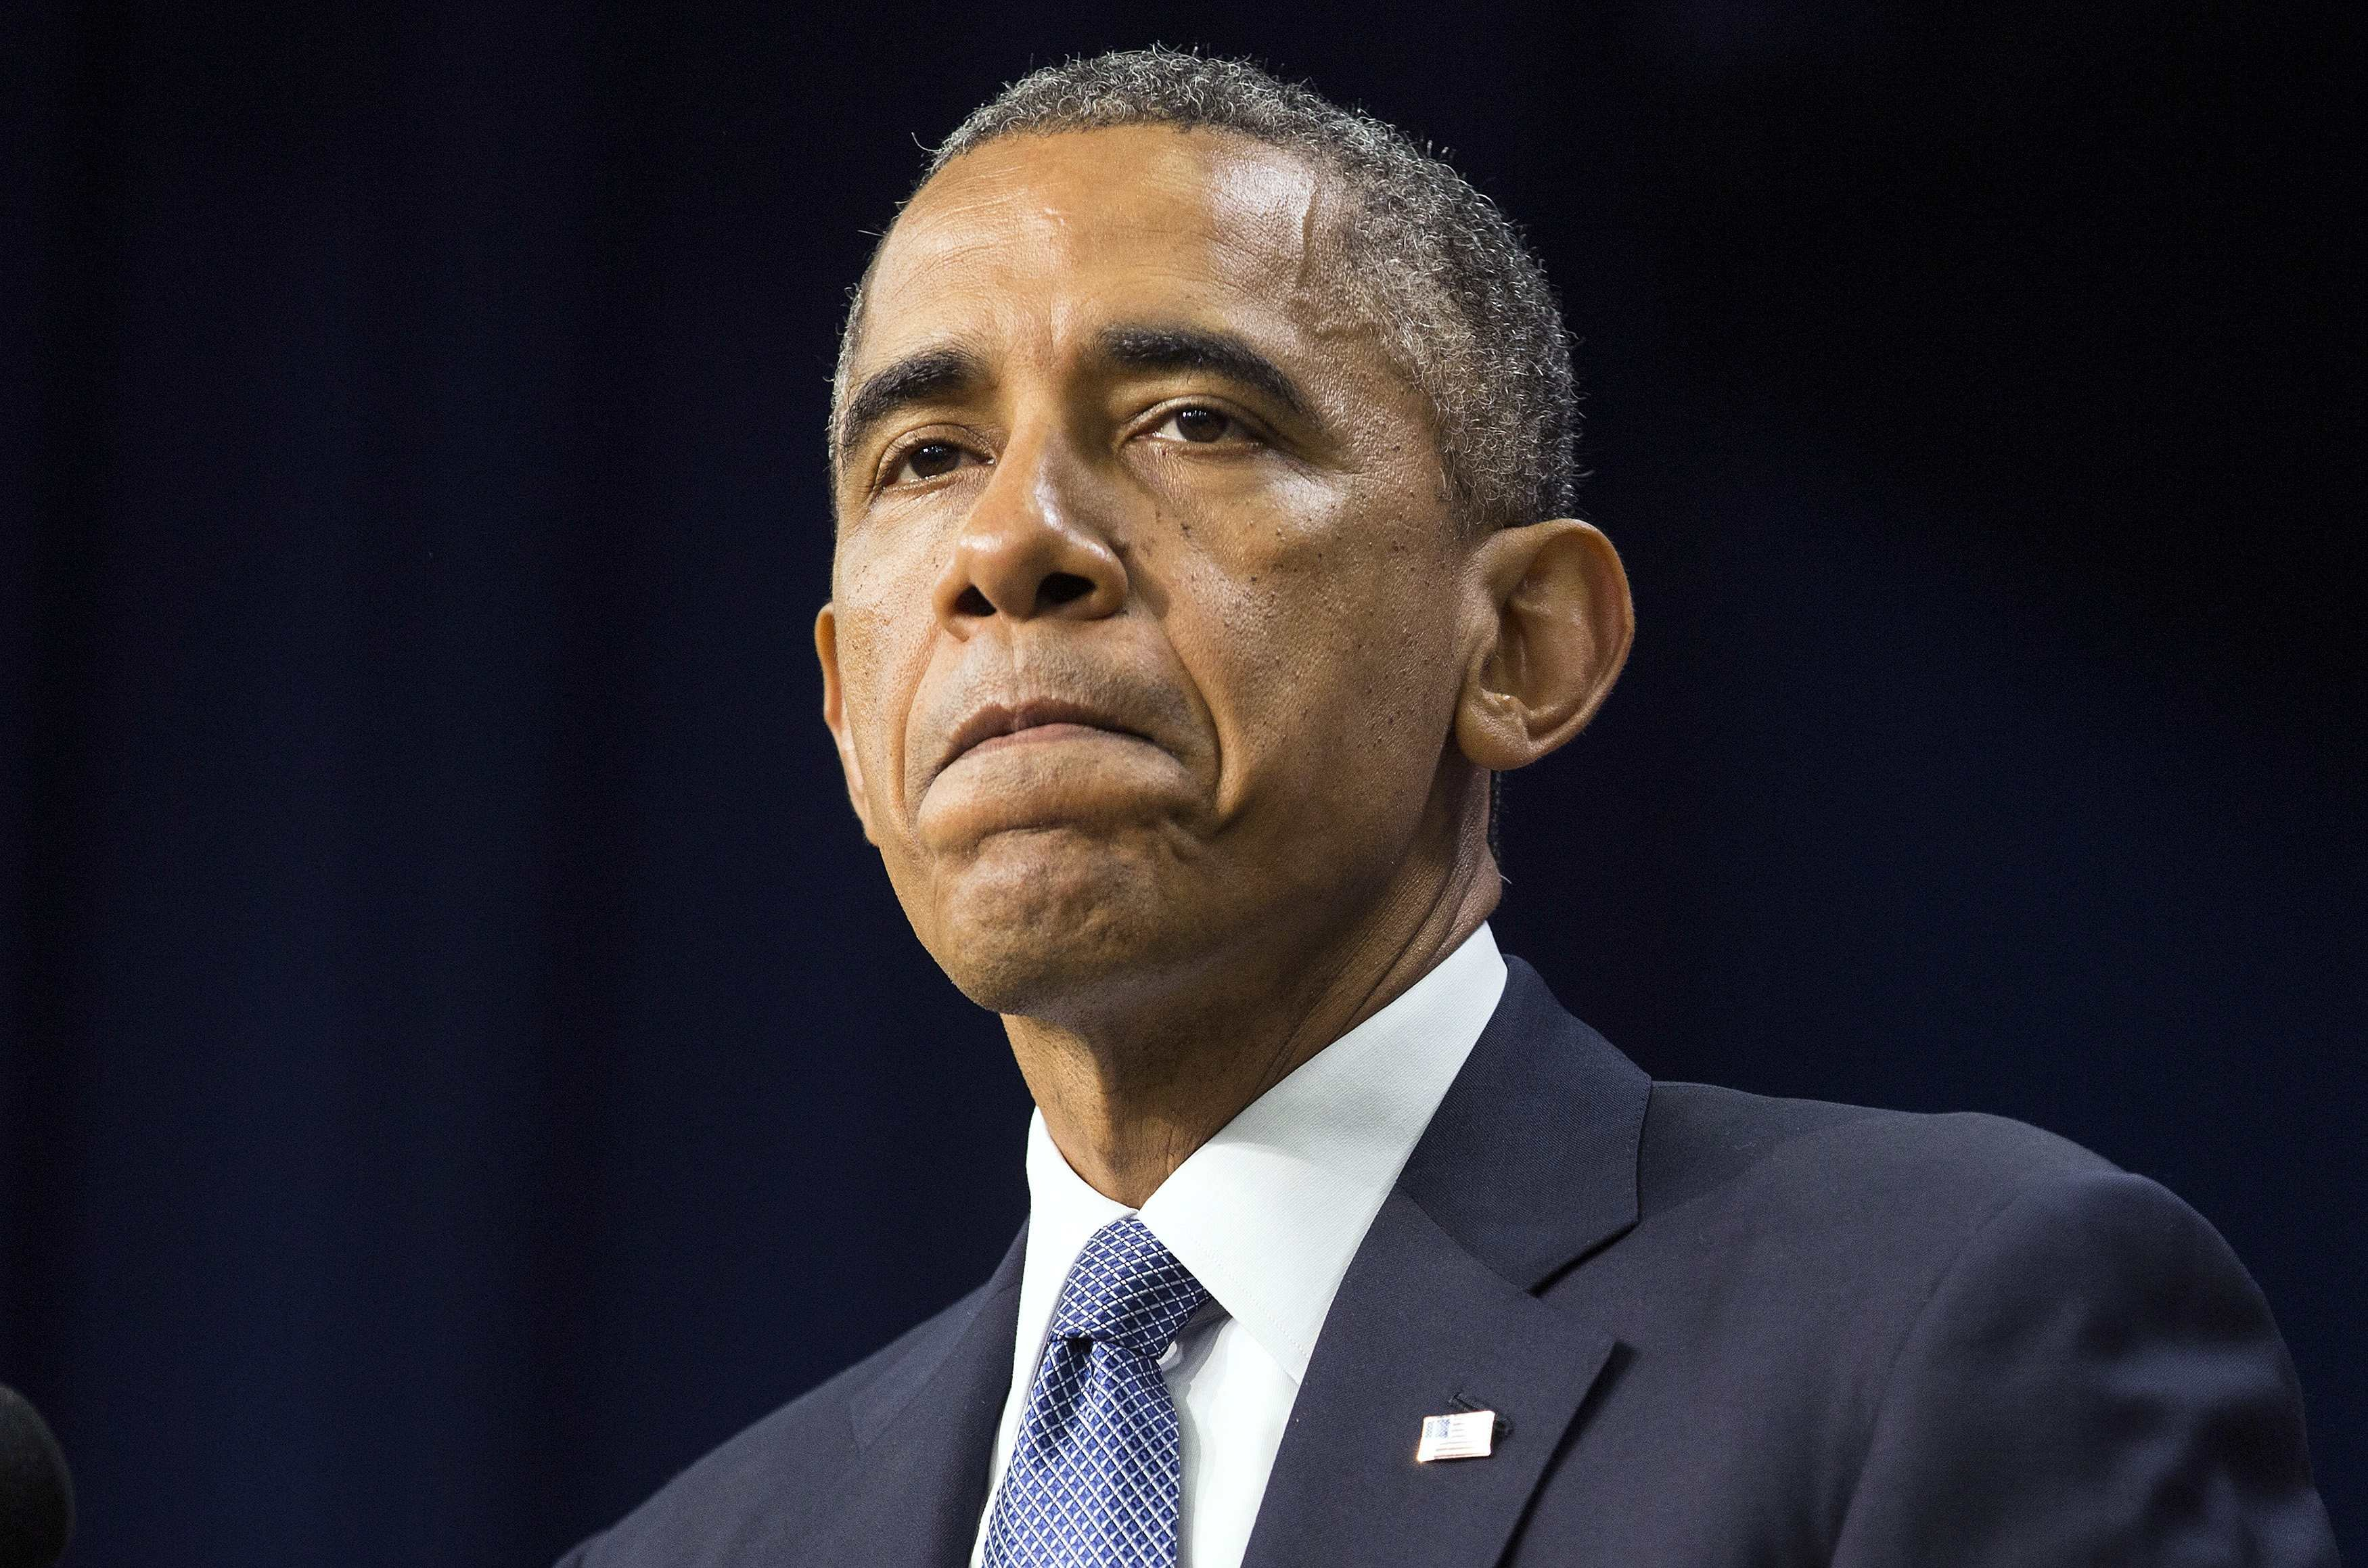 U.S. President Barack Obama before signing the Workforce Innovation and Opportunity Act at the White House in Washington on July 22, 2014.